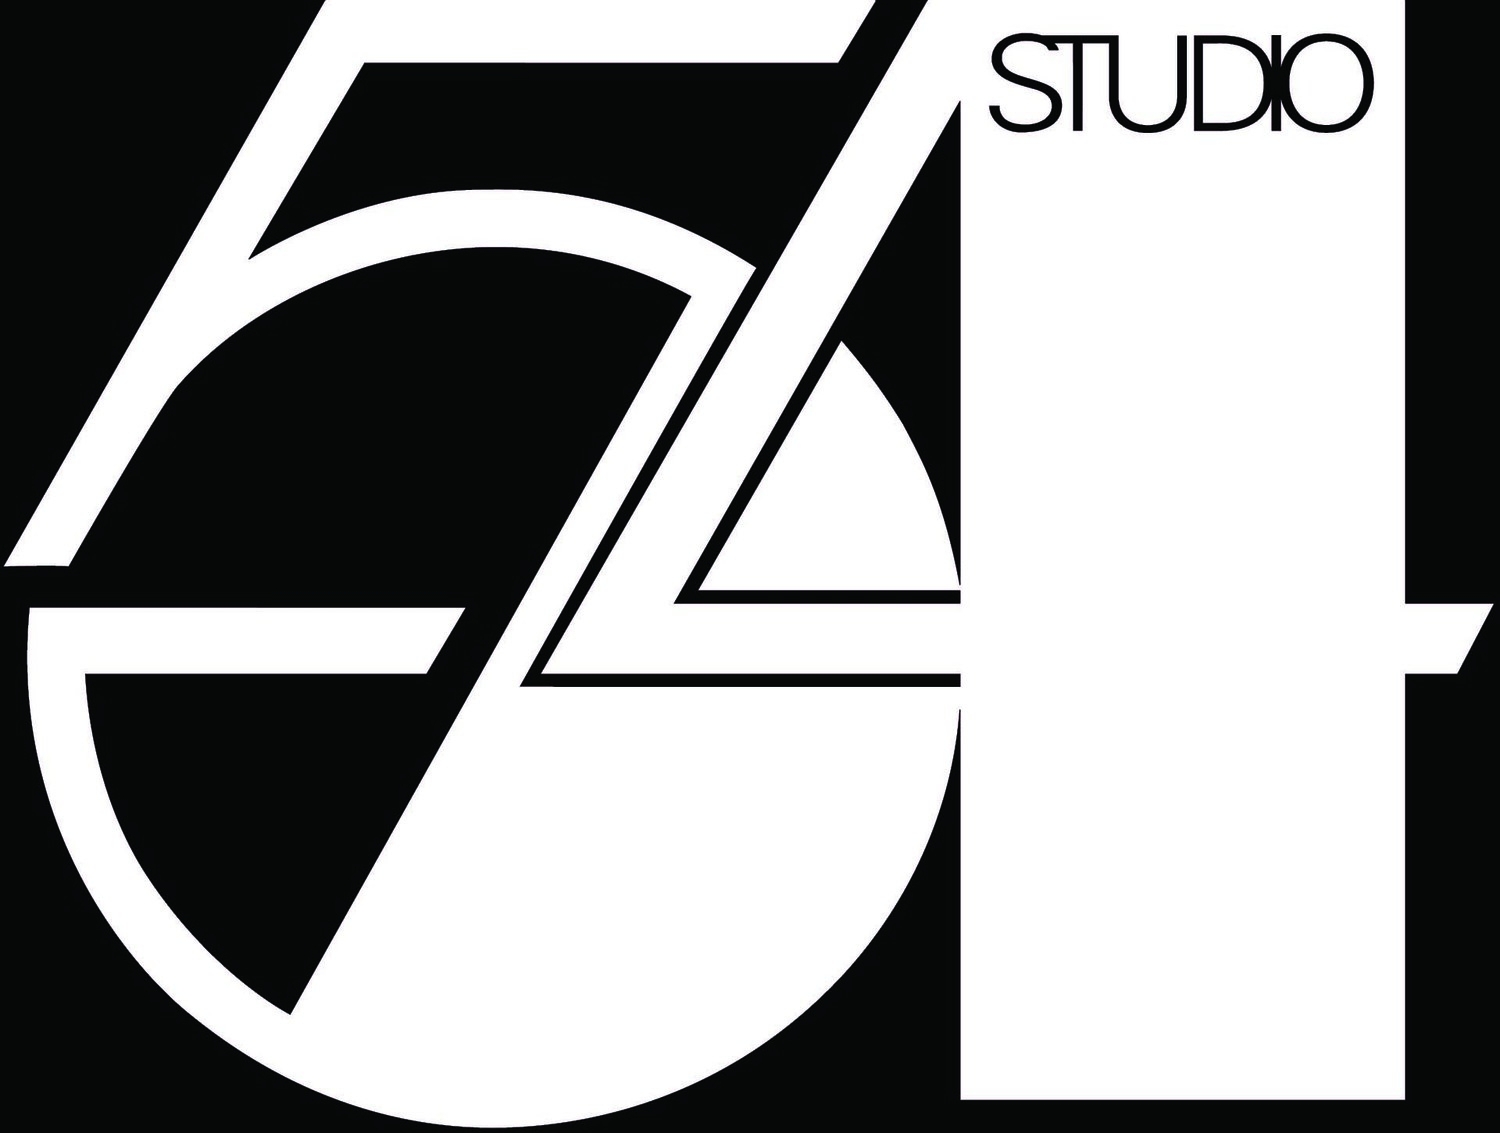 Studio 54: A Documentary Film